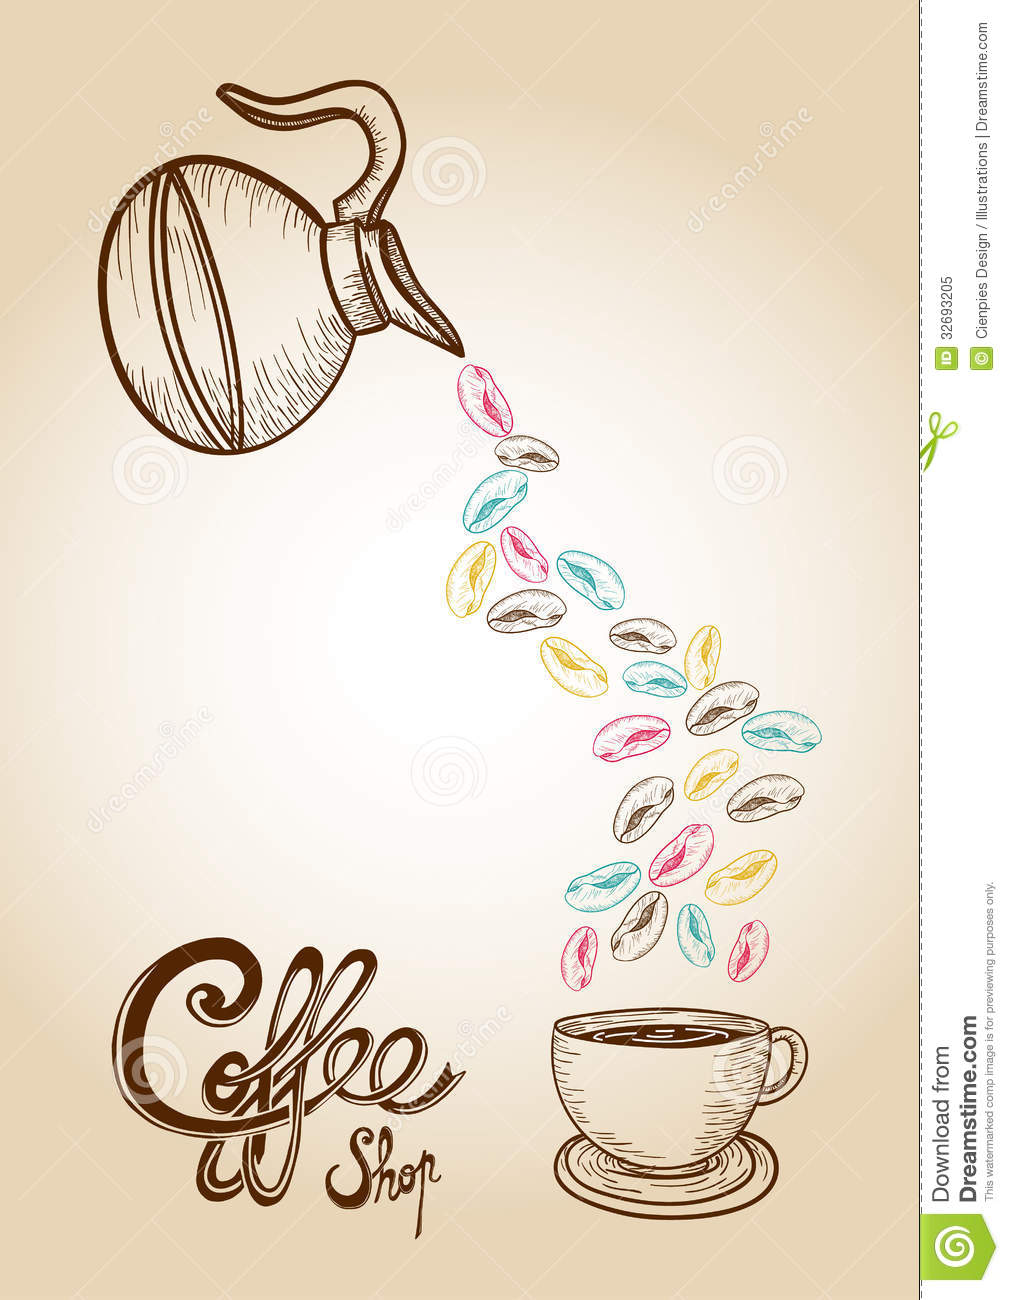 Coffee colorful sketch style beans illustration stock for How to draw a coffee bean